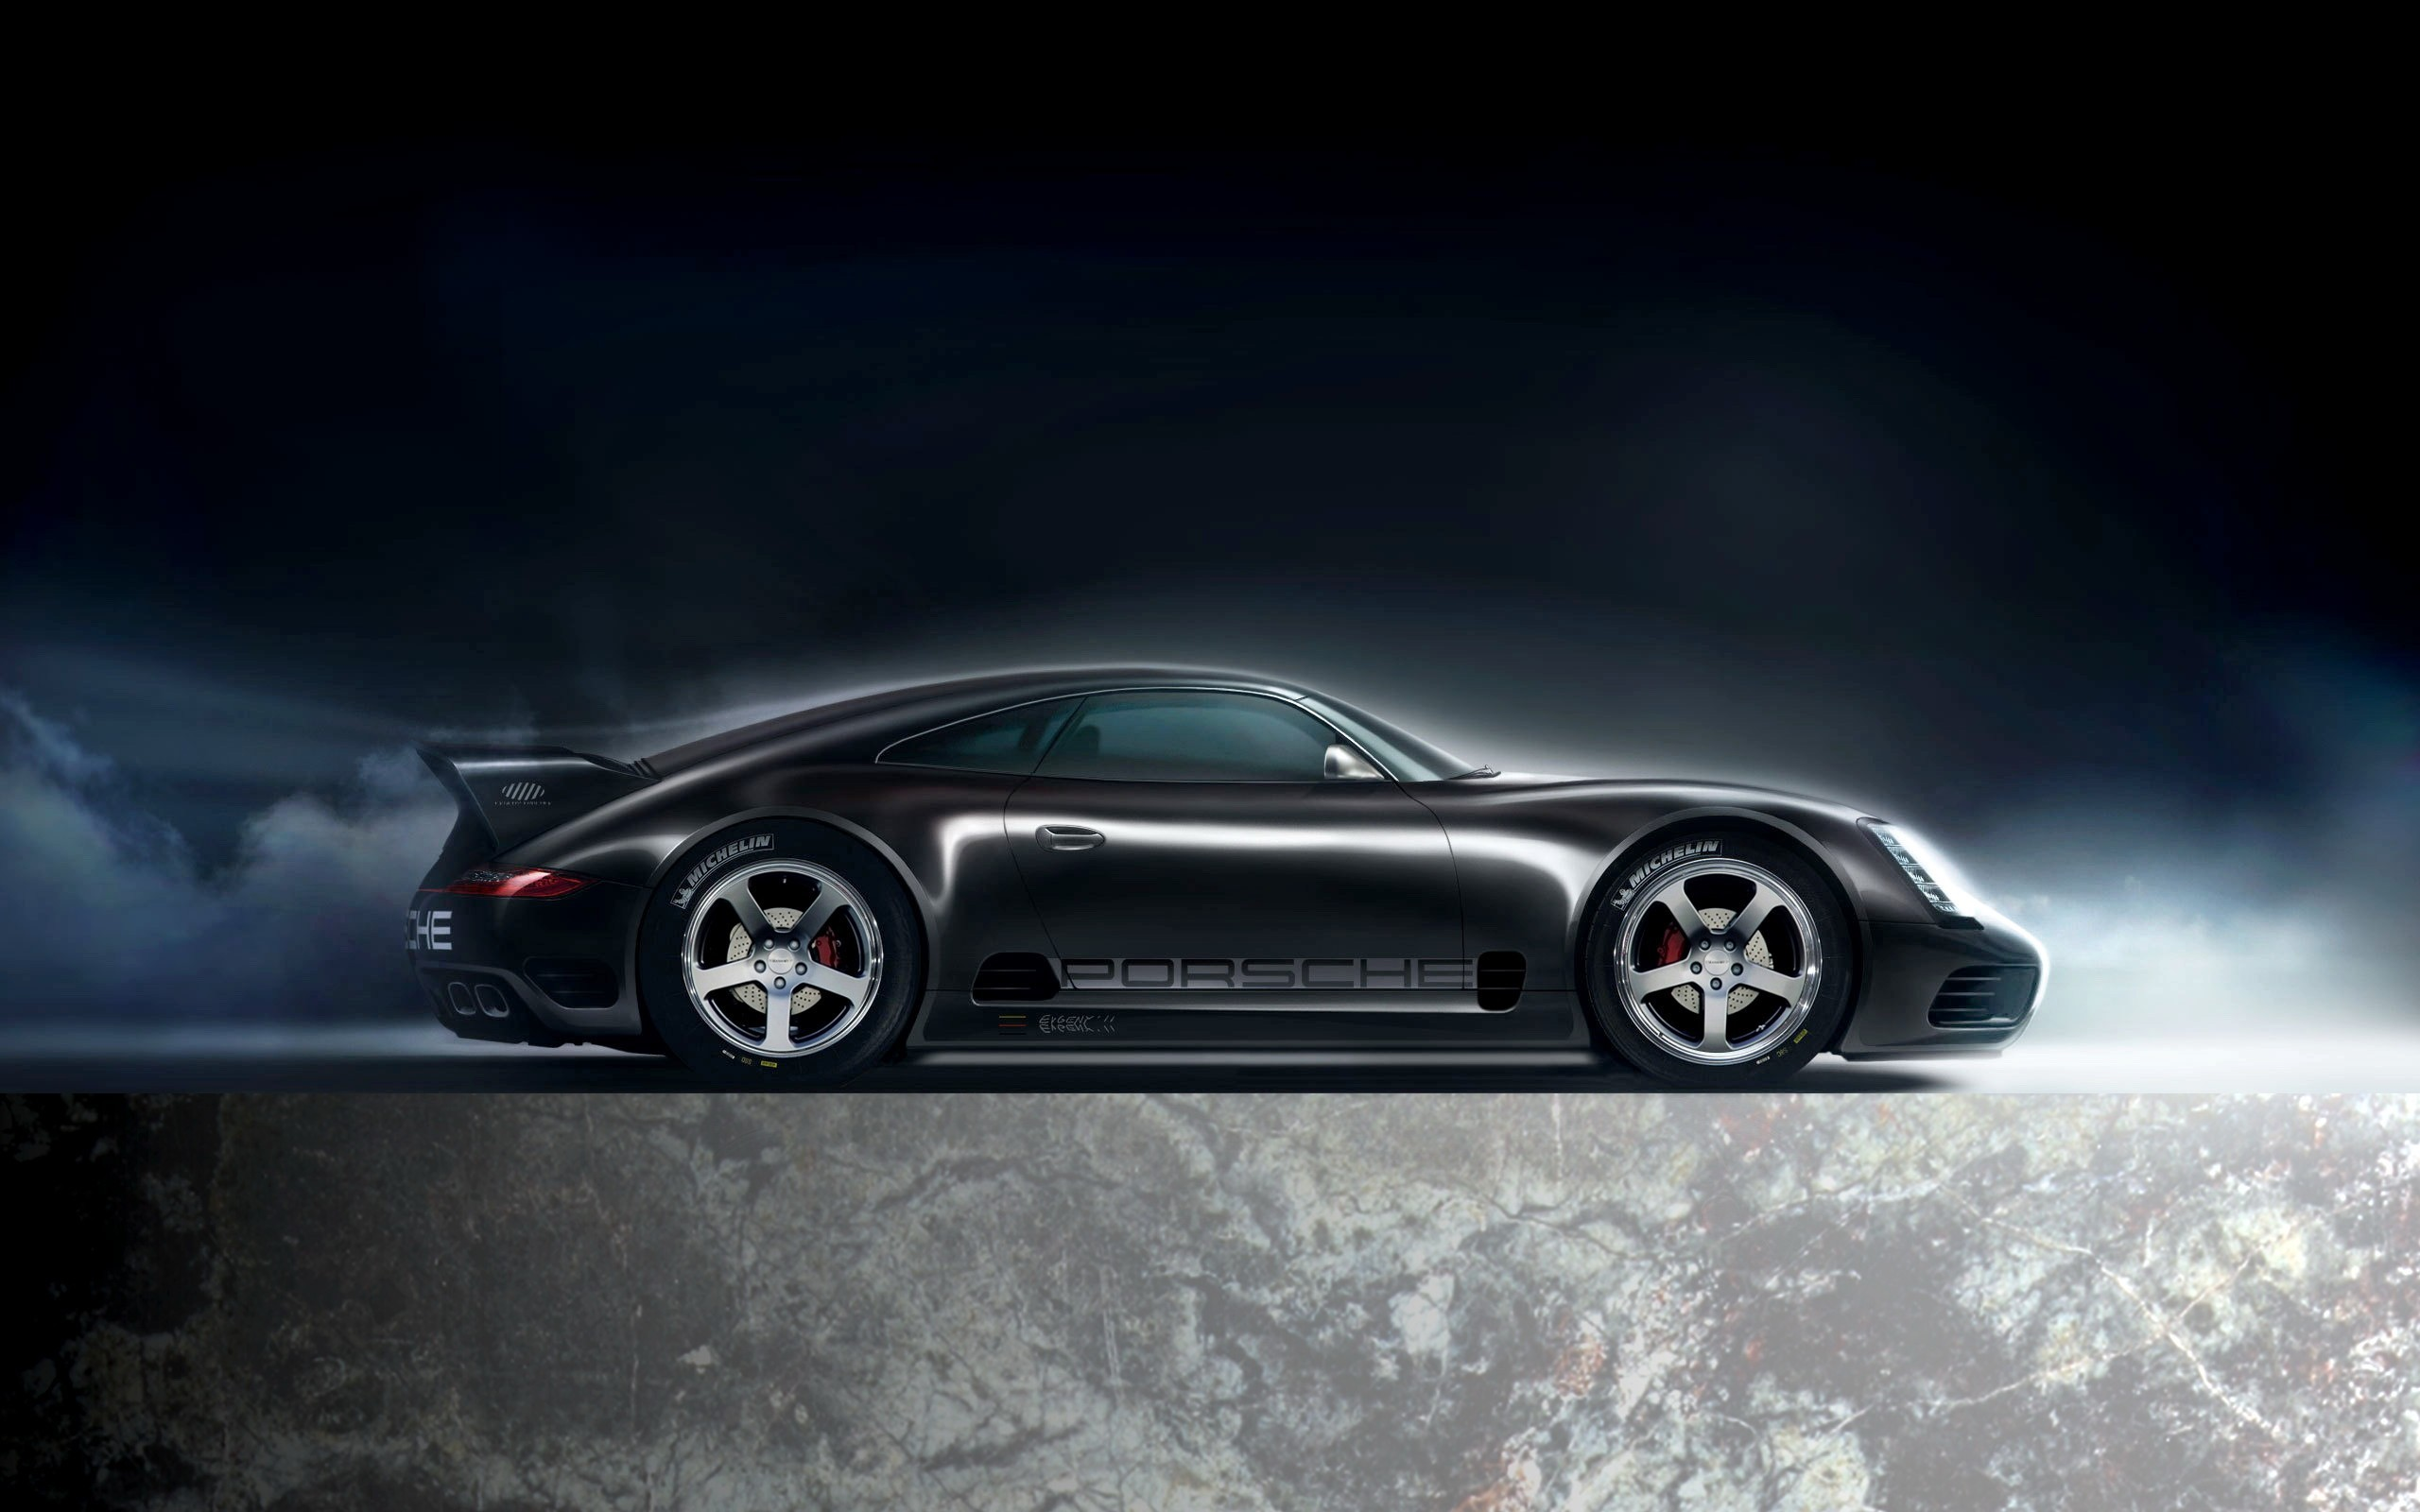 michelin porsche black cars wallpaper | allwallpaper.in #1426 | pc | en